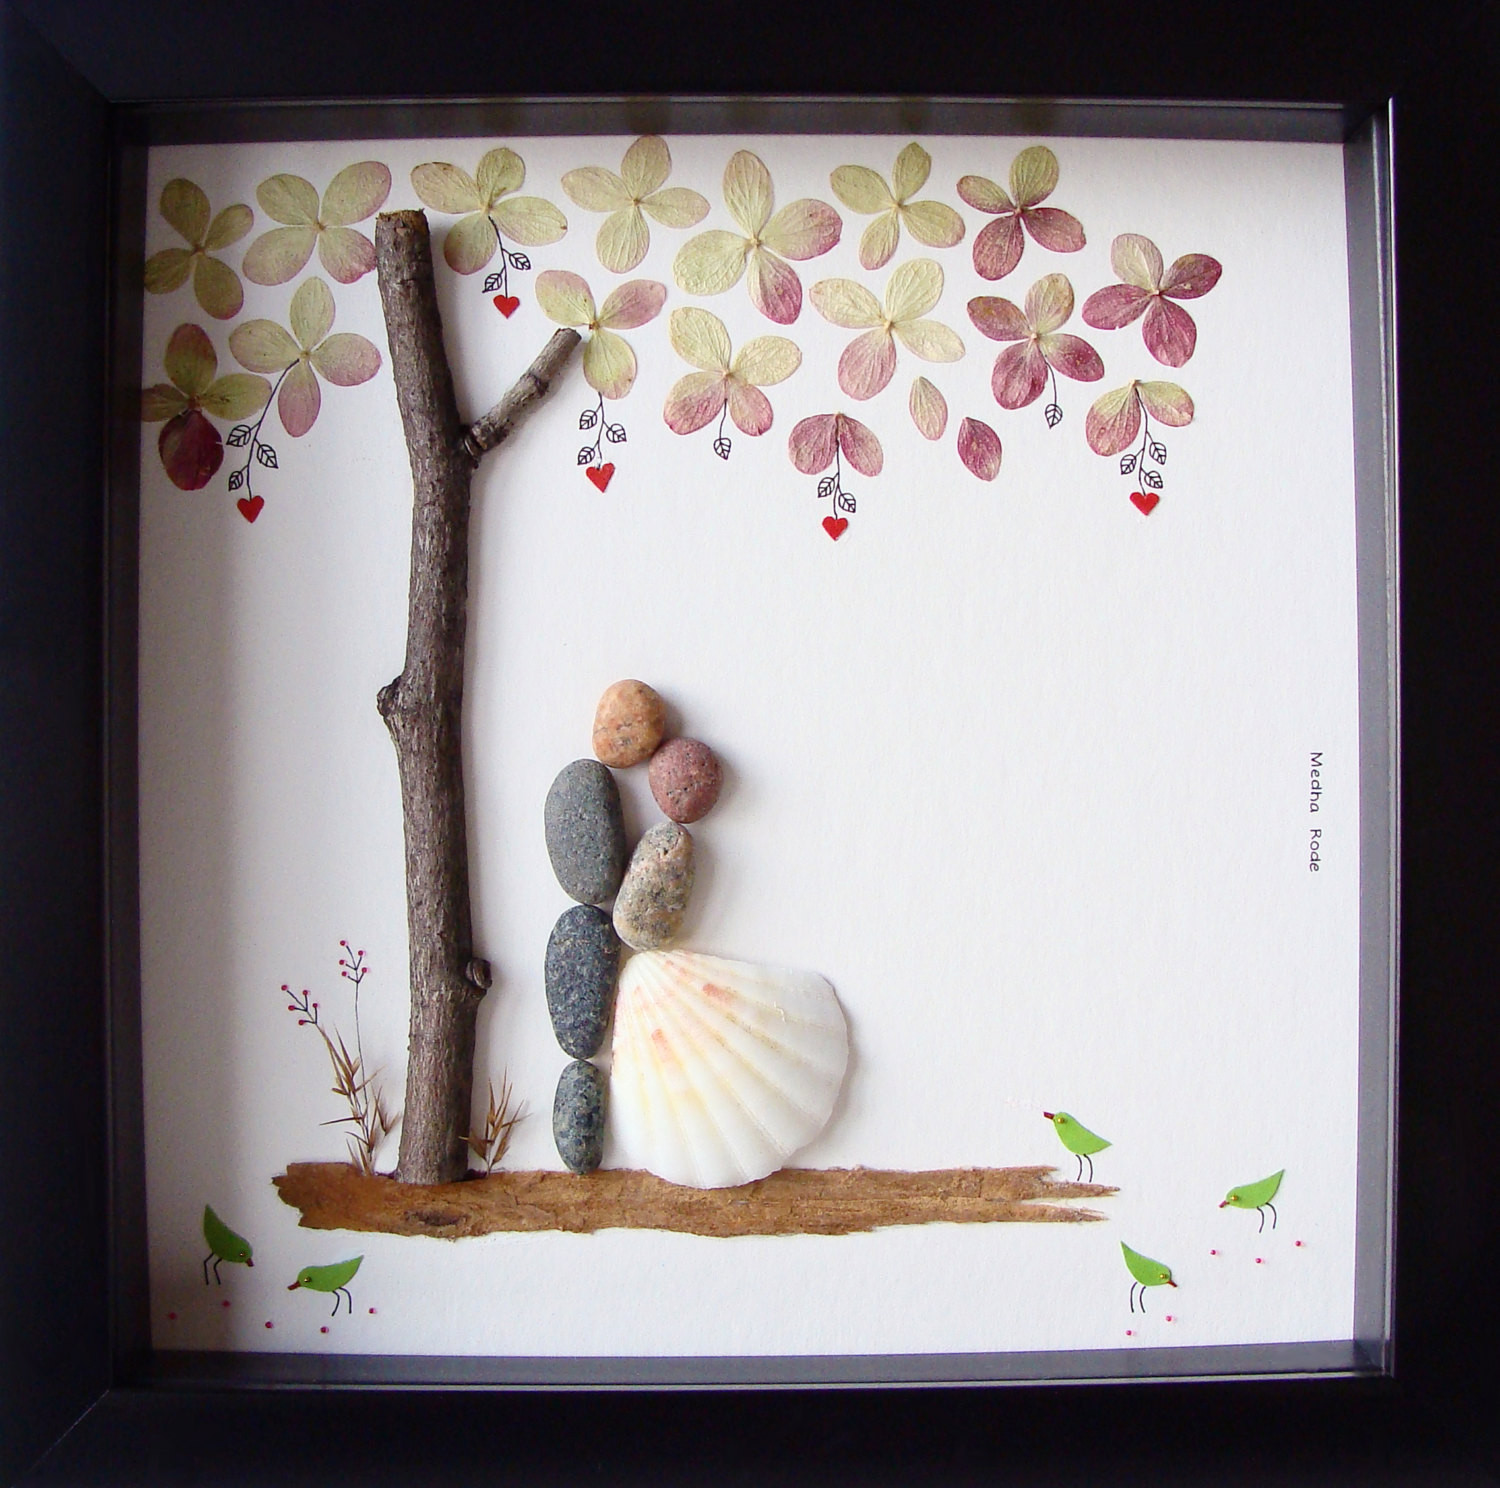 Wedding Gift Ideas For The Couple  Unique Wedding Gift For Couple Wedding Pebble Art by MedhaRode